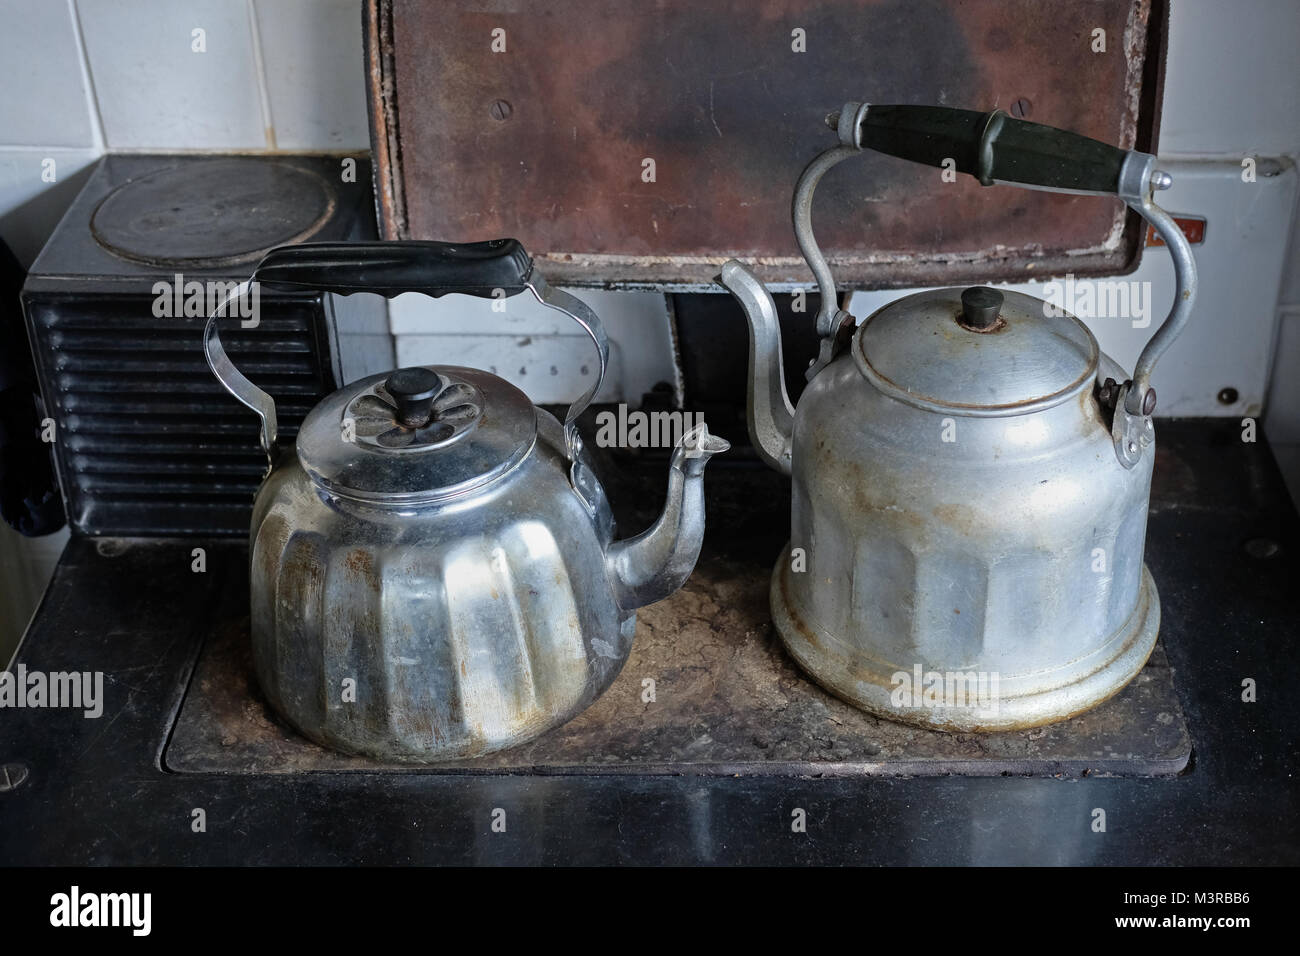 Two kettles on an old oil-fired range. - Stock Image